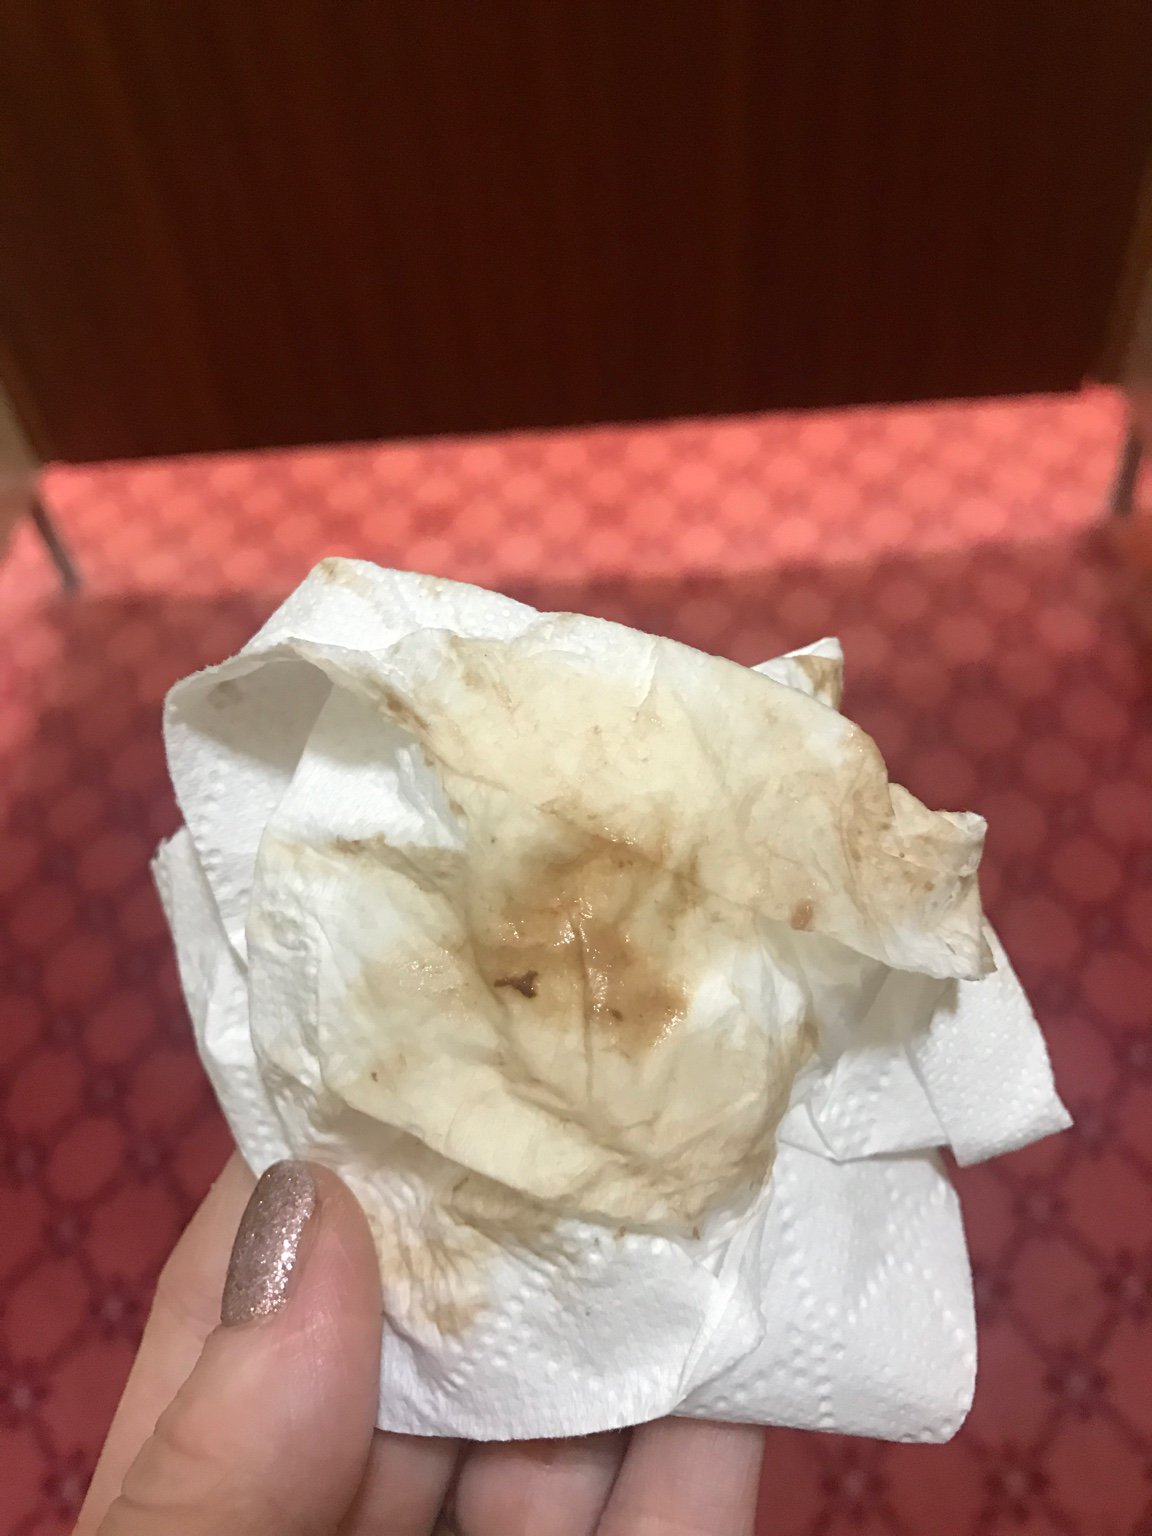 Clear Yellow Mucus Discharge 39 Weeks Pregnant ...